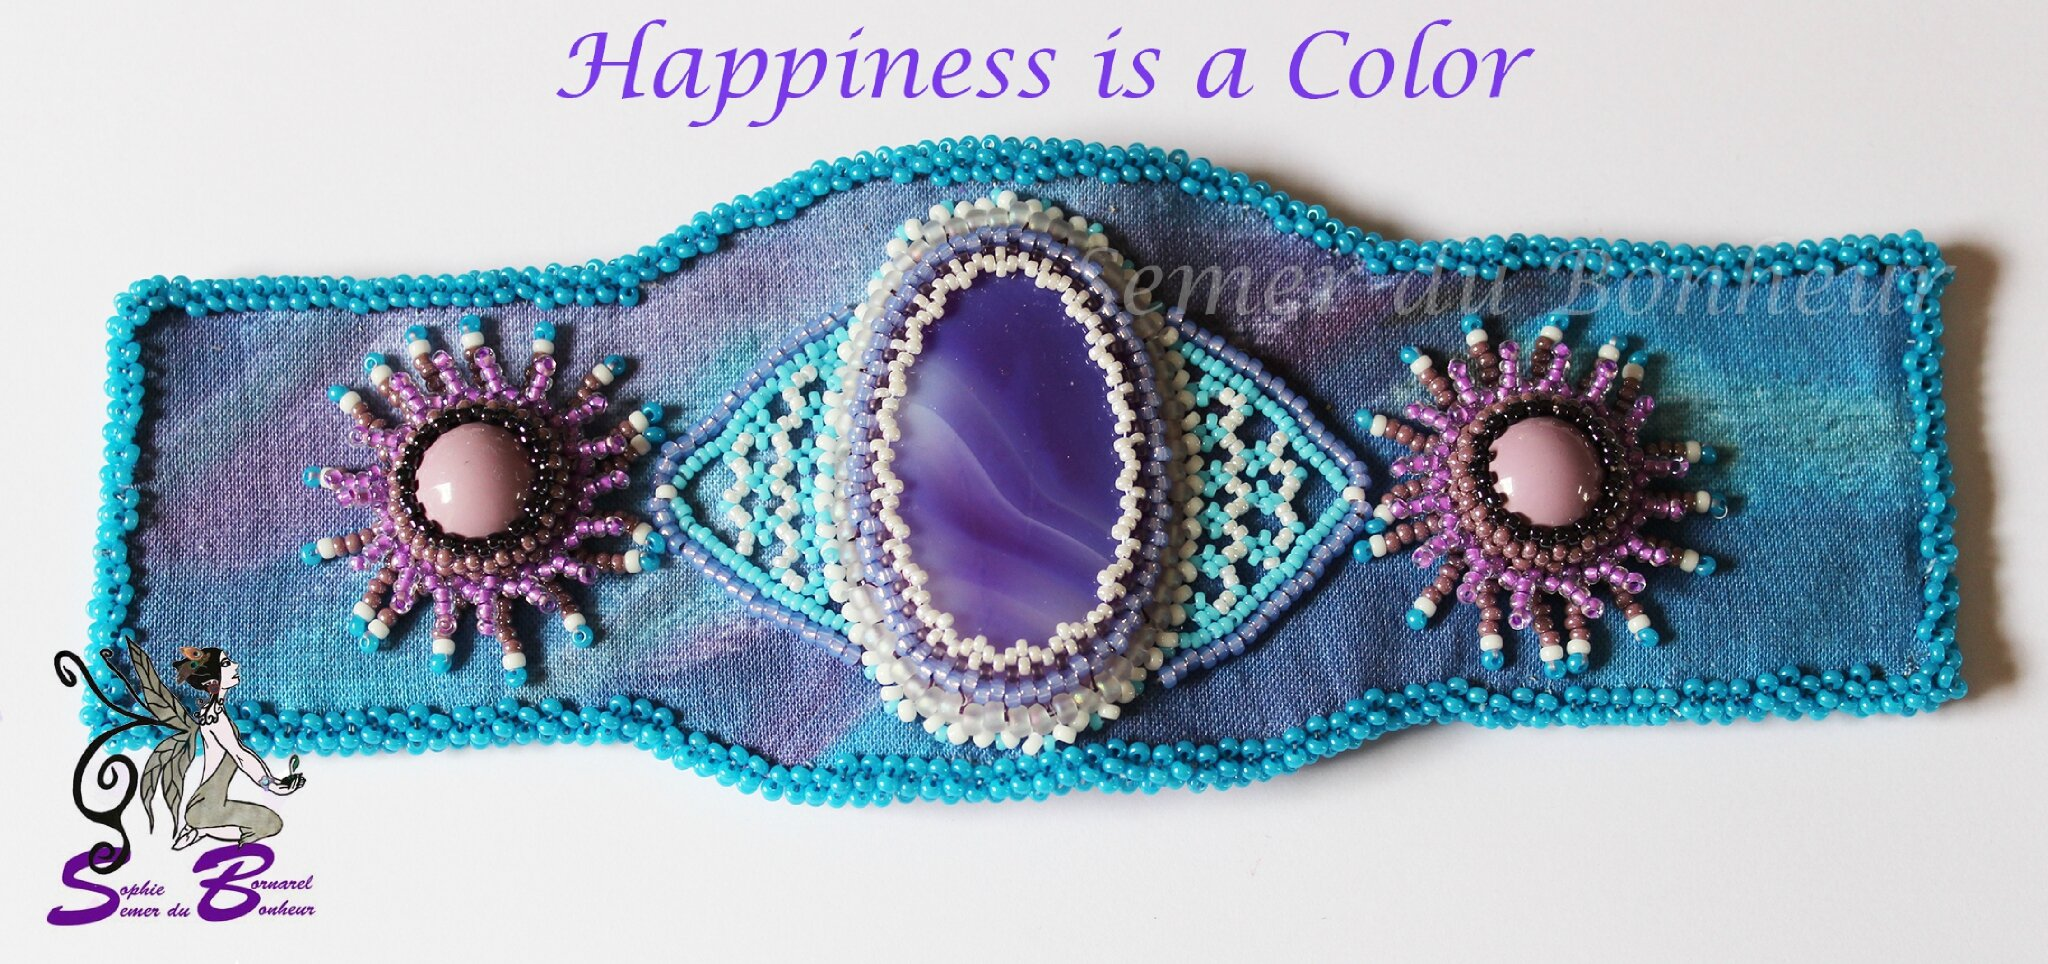 happiness is a color 1